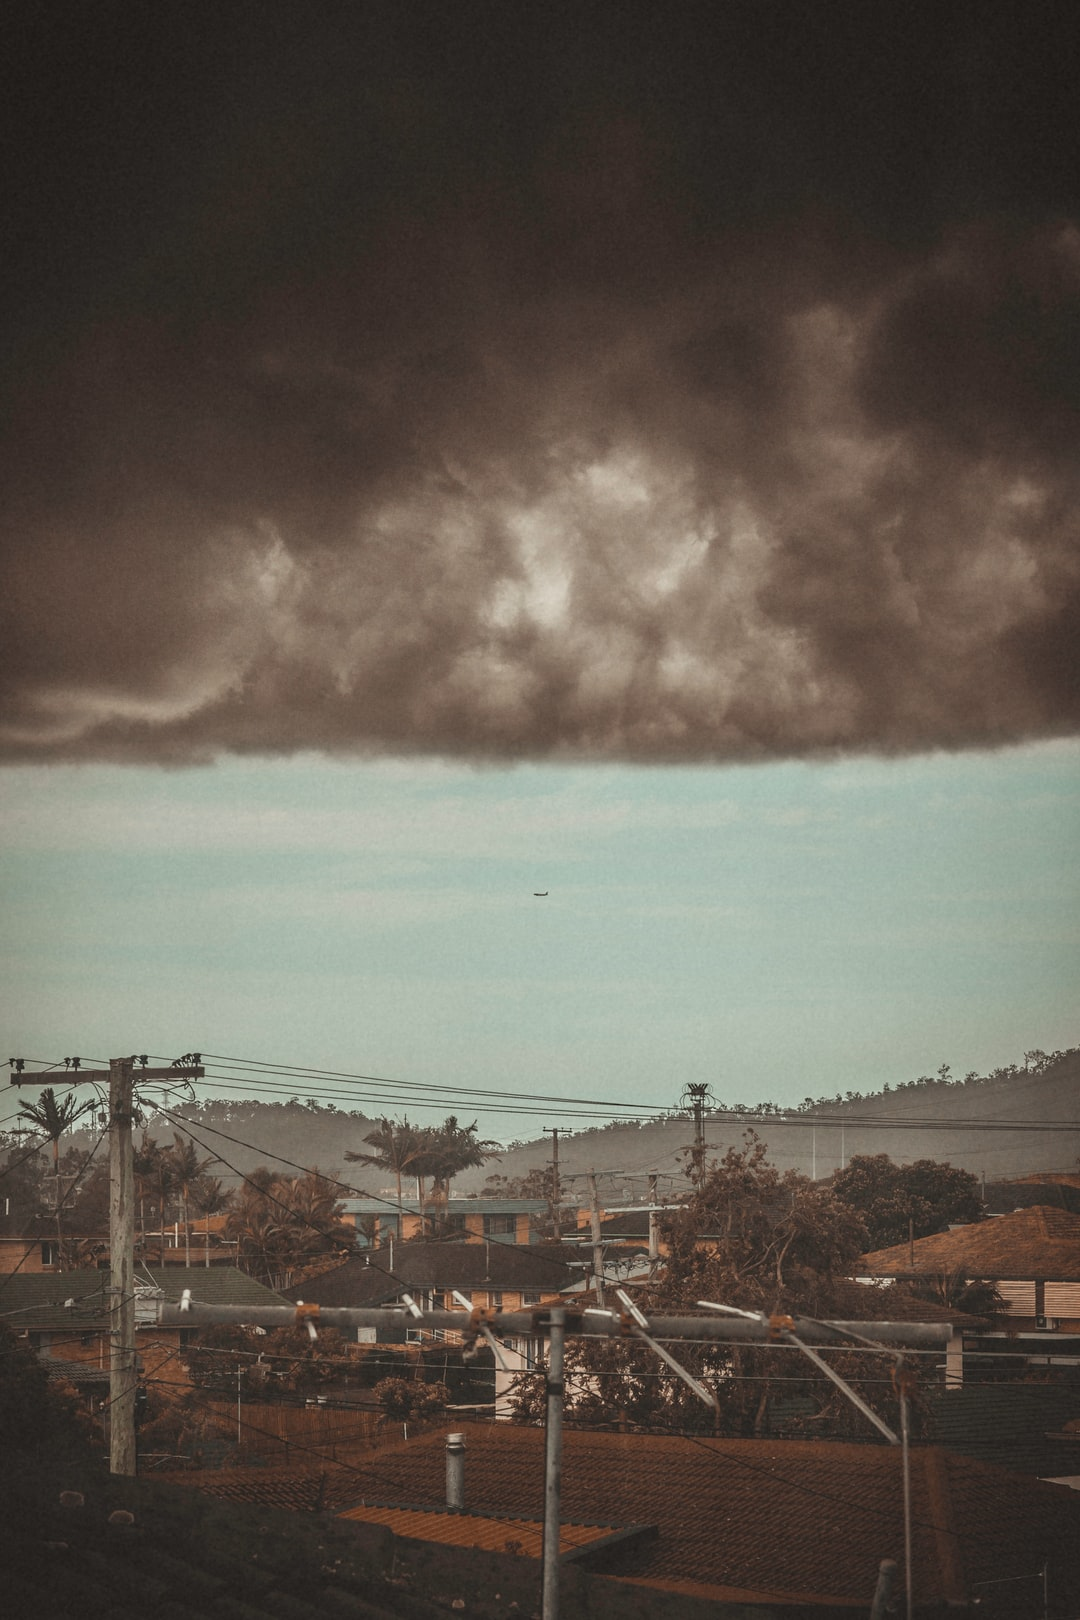 How is it that every time a crazy cool storm cloud comes along a plane just happens to situate itself perfectly? Always gets me thinking that the people in that plane probably have no idea what is above them, living in such blissful ignorance to the storm that surrounds them. #ametaphorforsomething